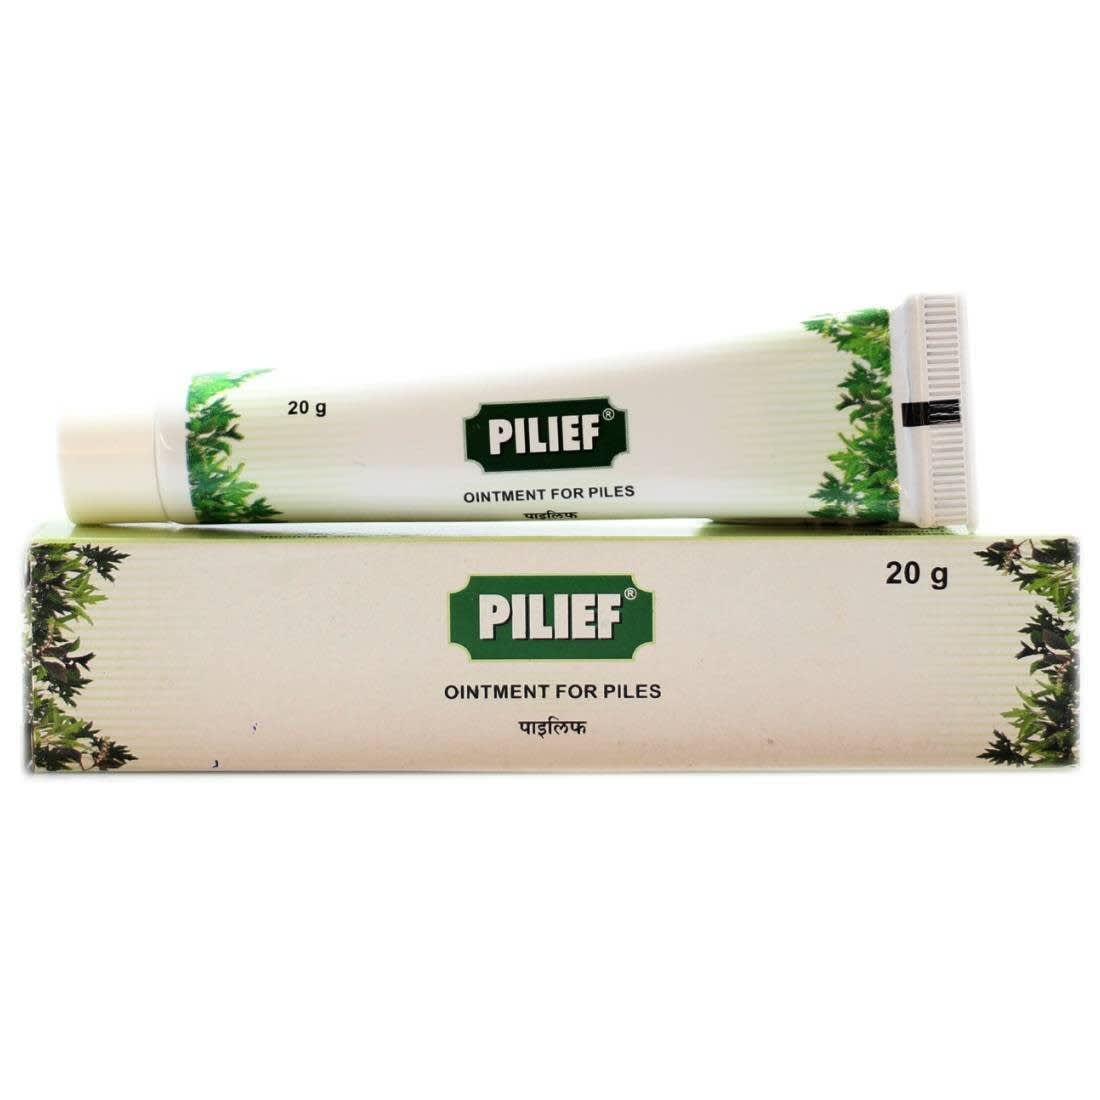 Charak Pilief Ointment